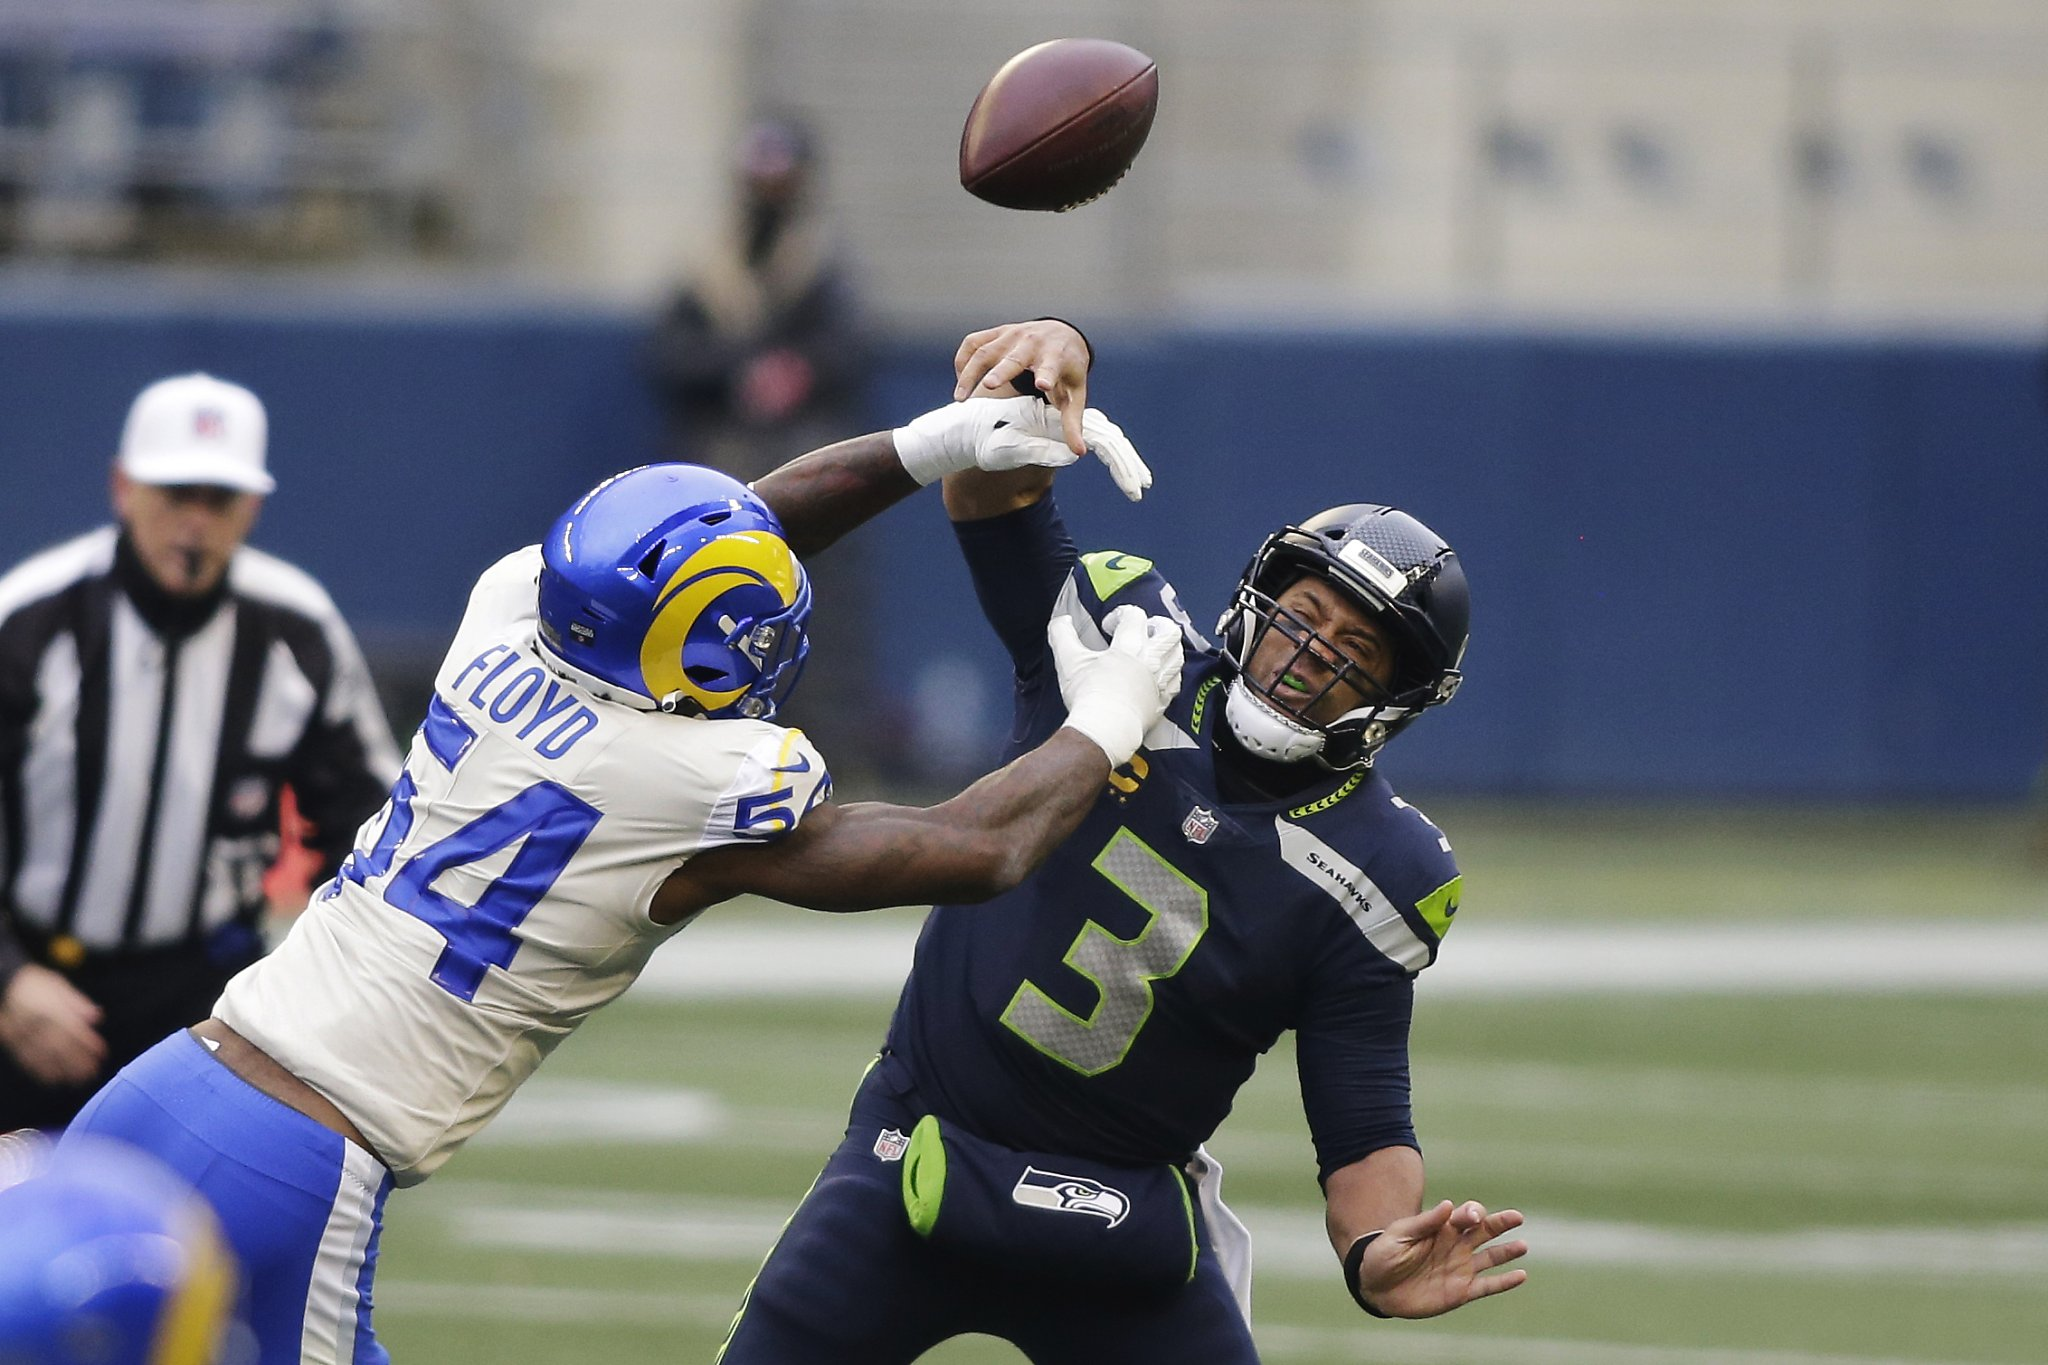 Rams get better of division rivals, toppling Seahawks 30-20